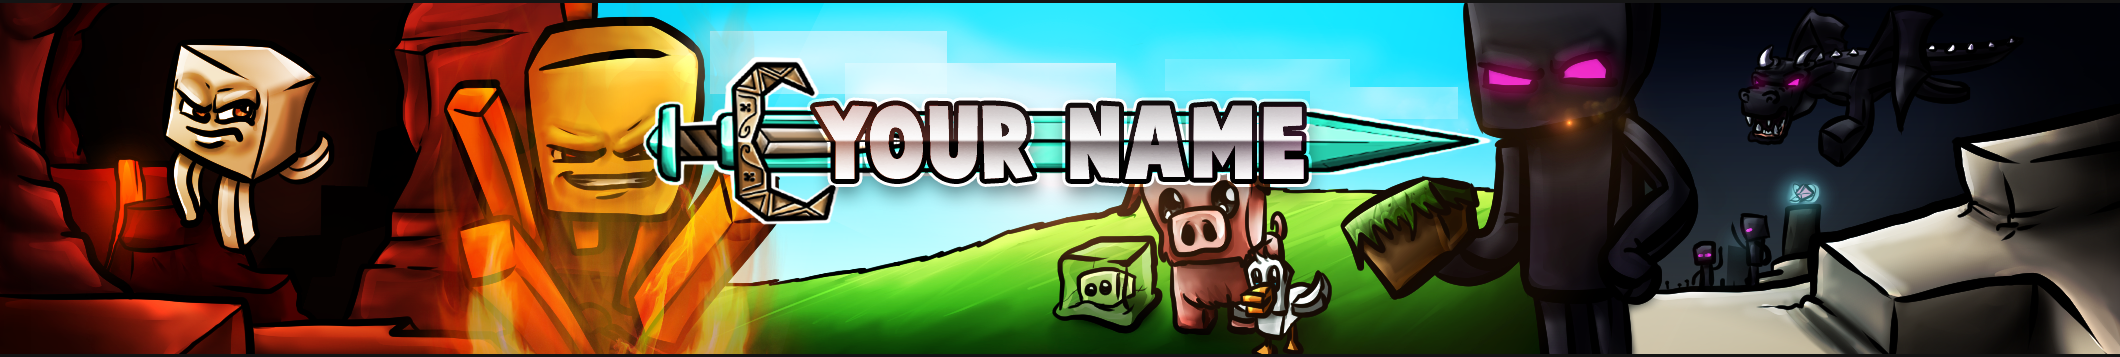 Youtube Banner Template Free Minecraft Youtube Banner